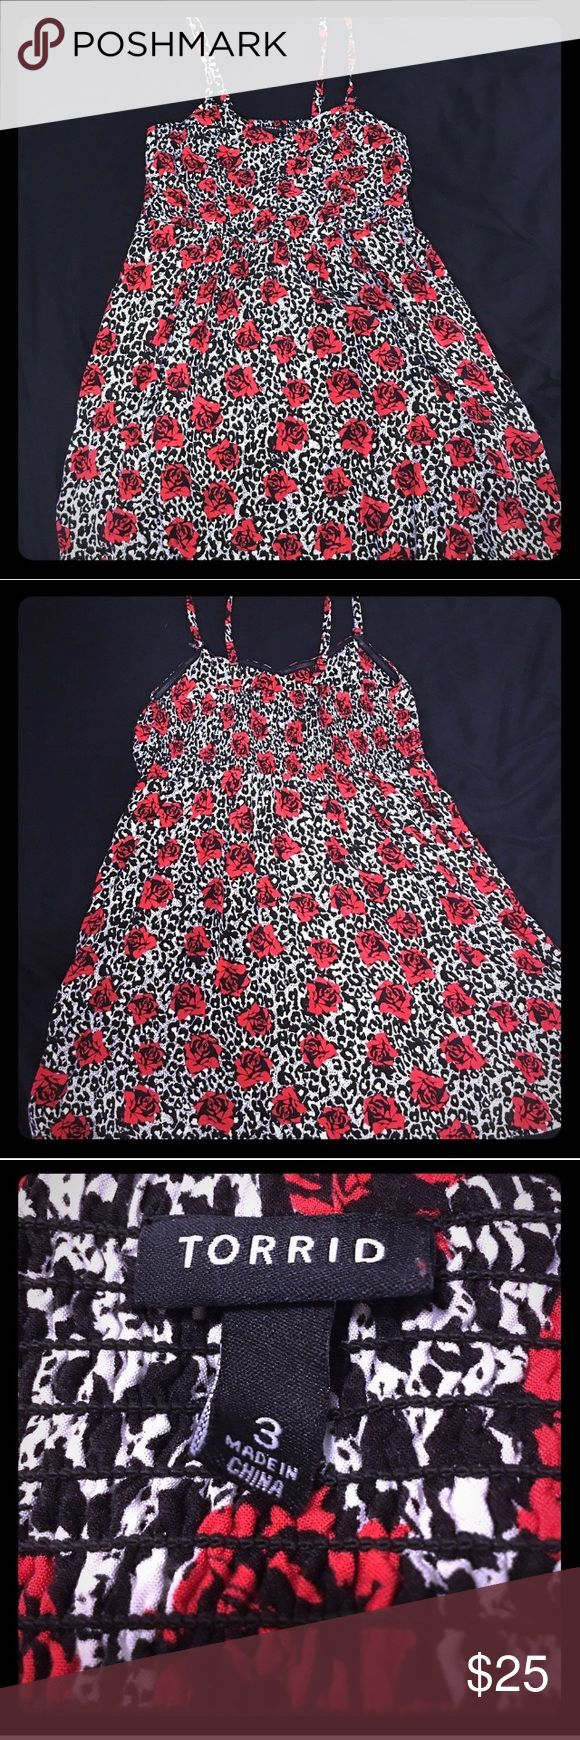 Torrid White Leopard & Red Rose Challis Dress Torrid white leopard with red rose accent challis dress. Removable spaghetti straps for a sexy strapless look! This dress also has pockets! Great for a night out on the town with the girls or a date night with your s.o! Only worn twice! torrid Dresses